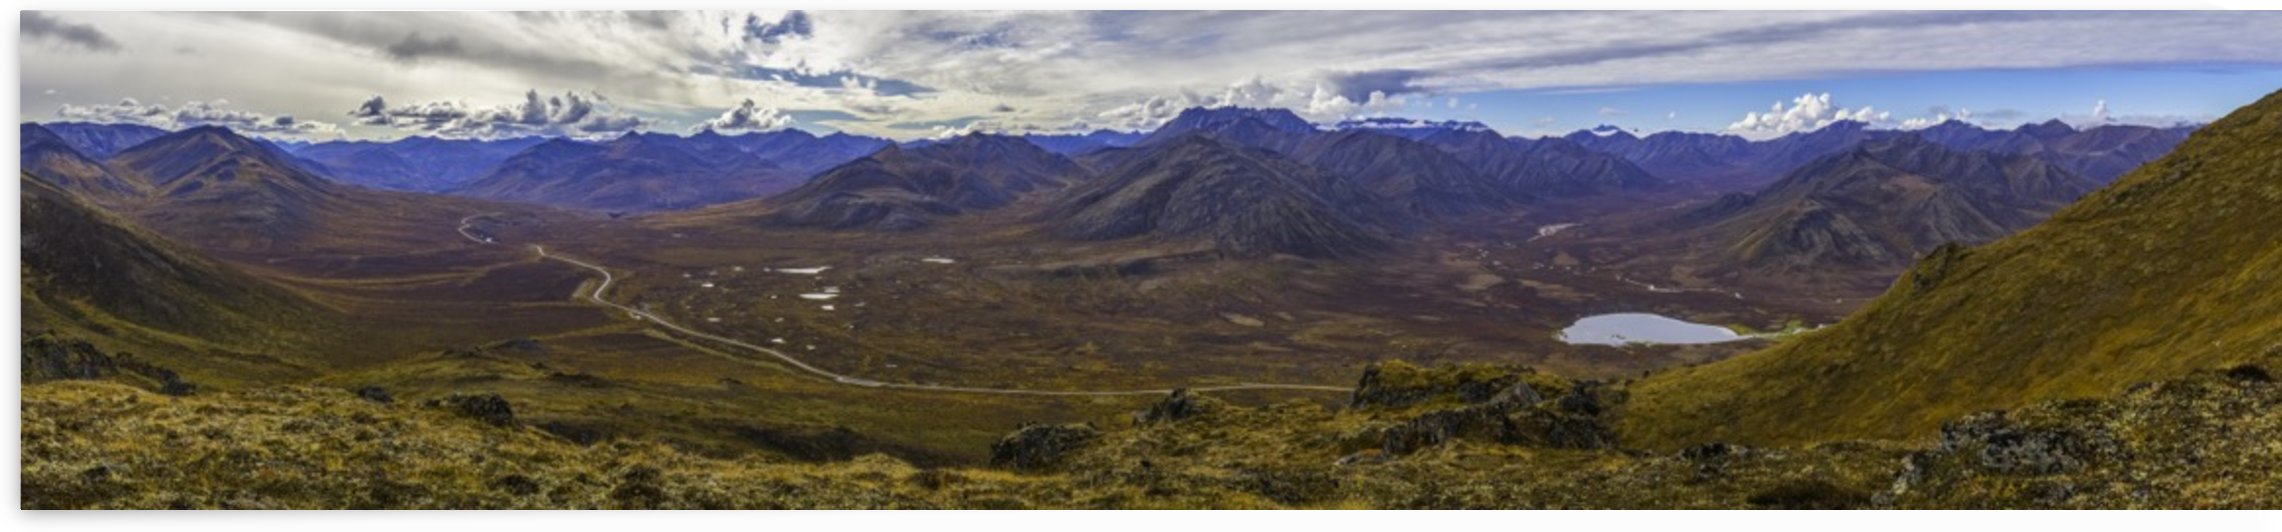 Panoramic image of the landscape in autumn colours along the Dempster Highway; Yukon, Canada by PacificStock